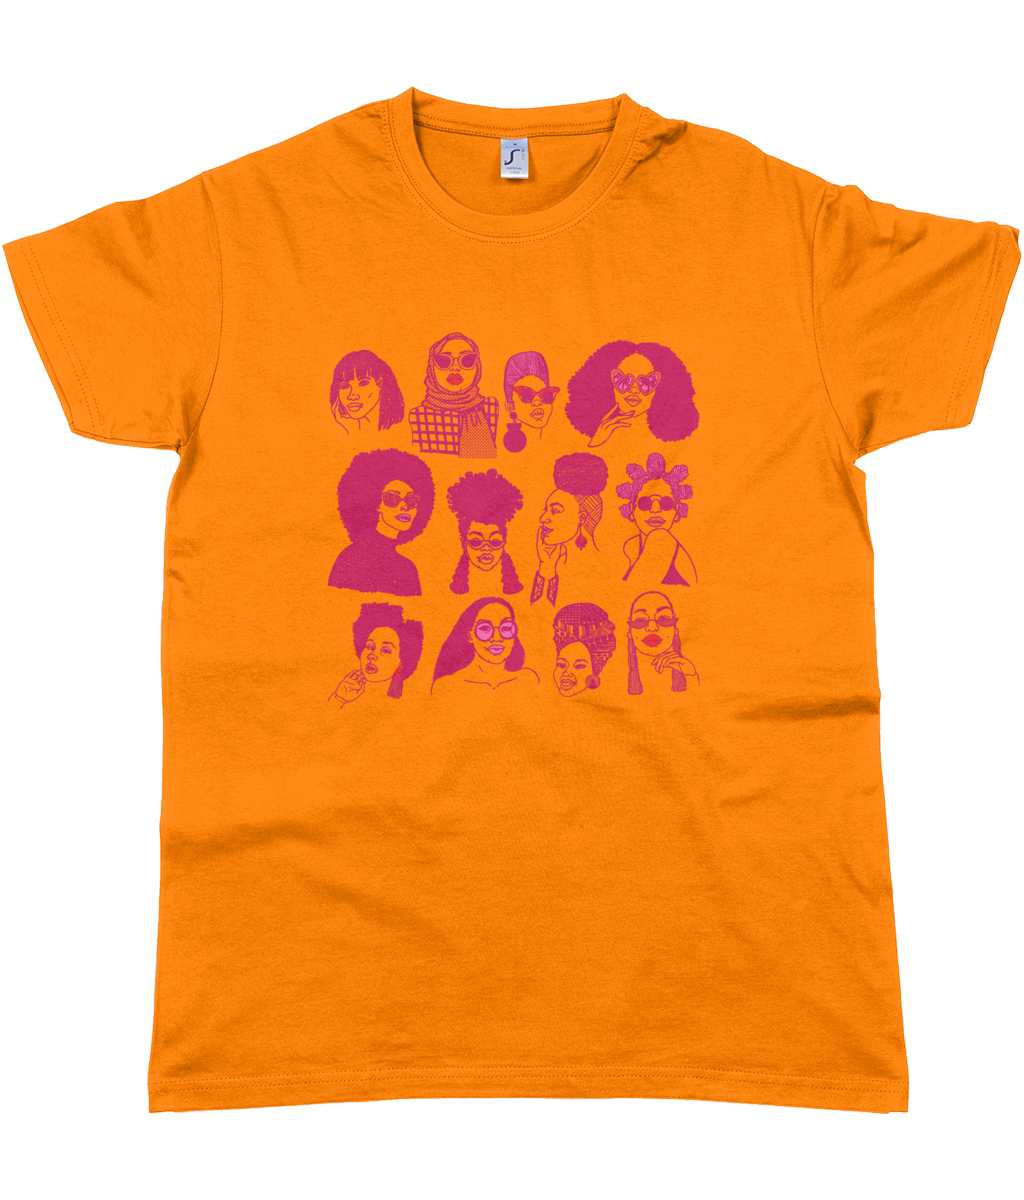 Babes of Summer Tee (Additional Colour Options)